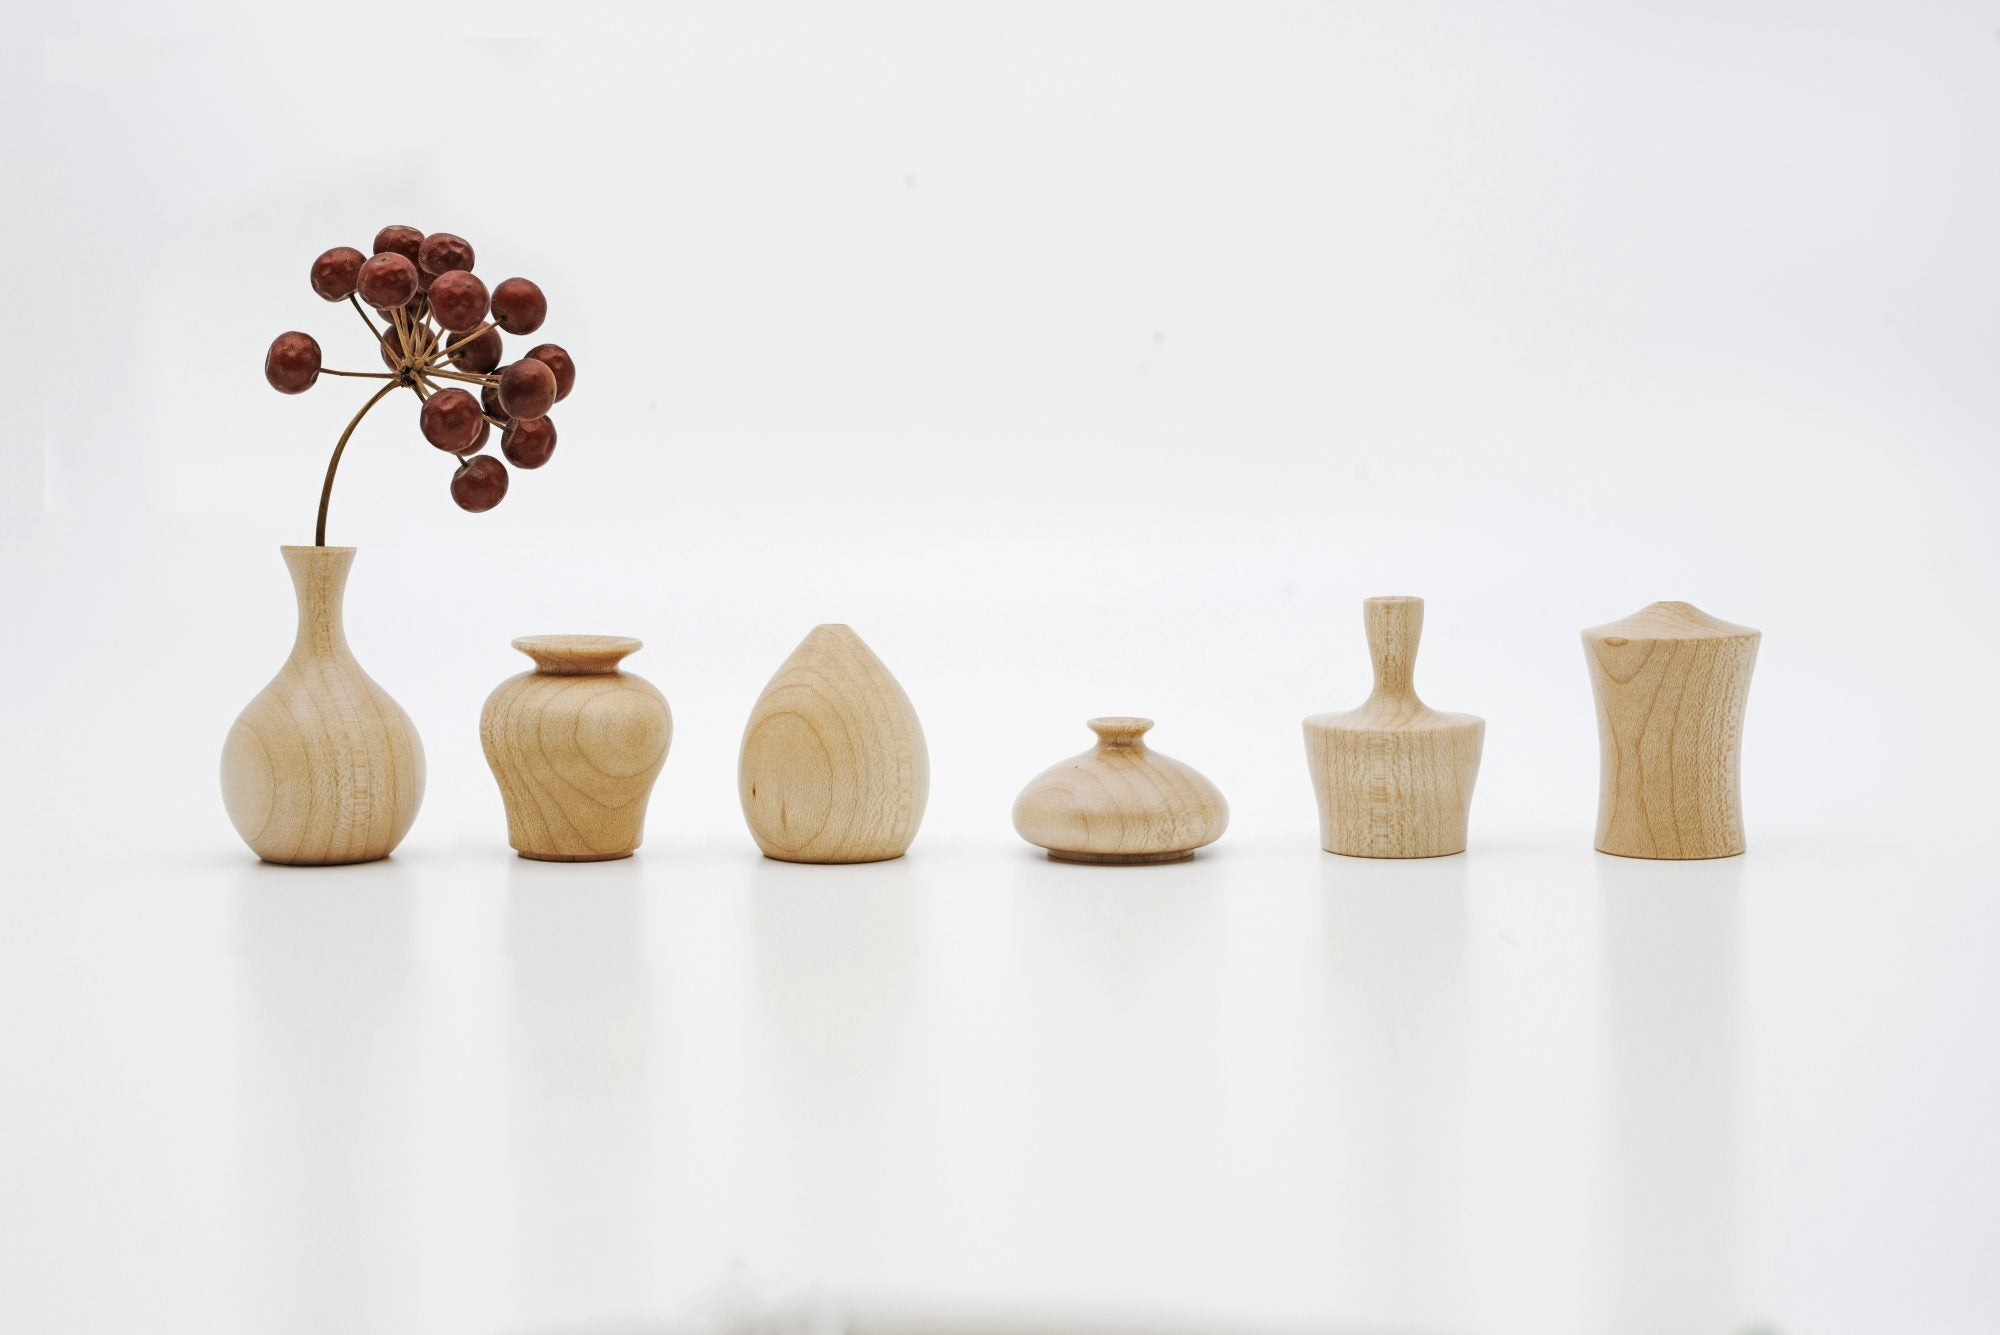 KINUTA(wooden block for beating cloths used for softening) Shape Mini Wooden Vase from Japan